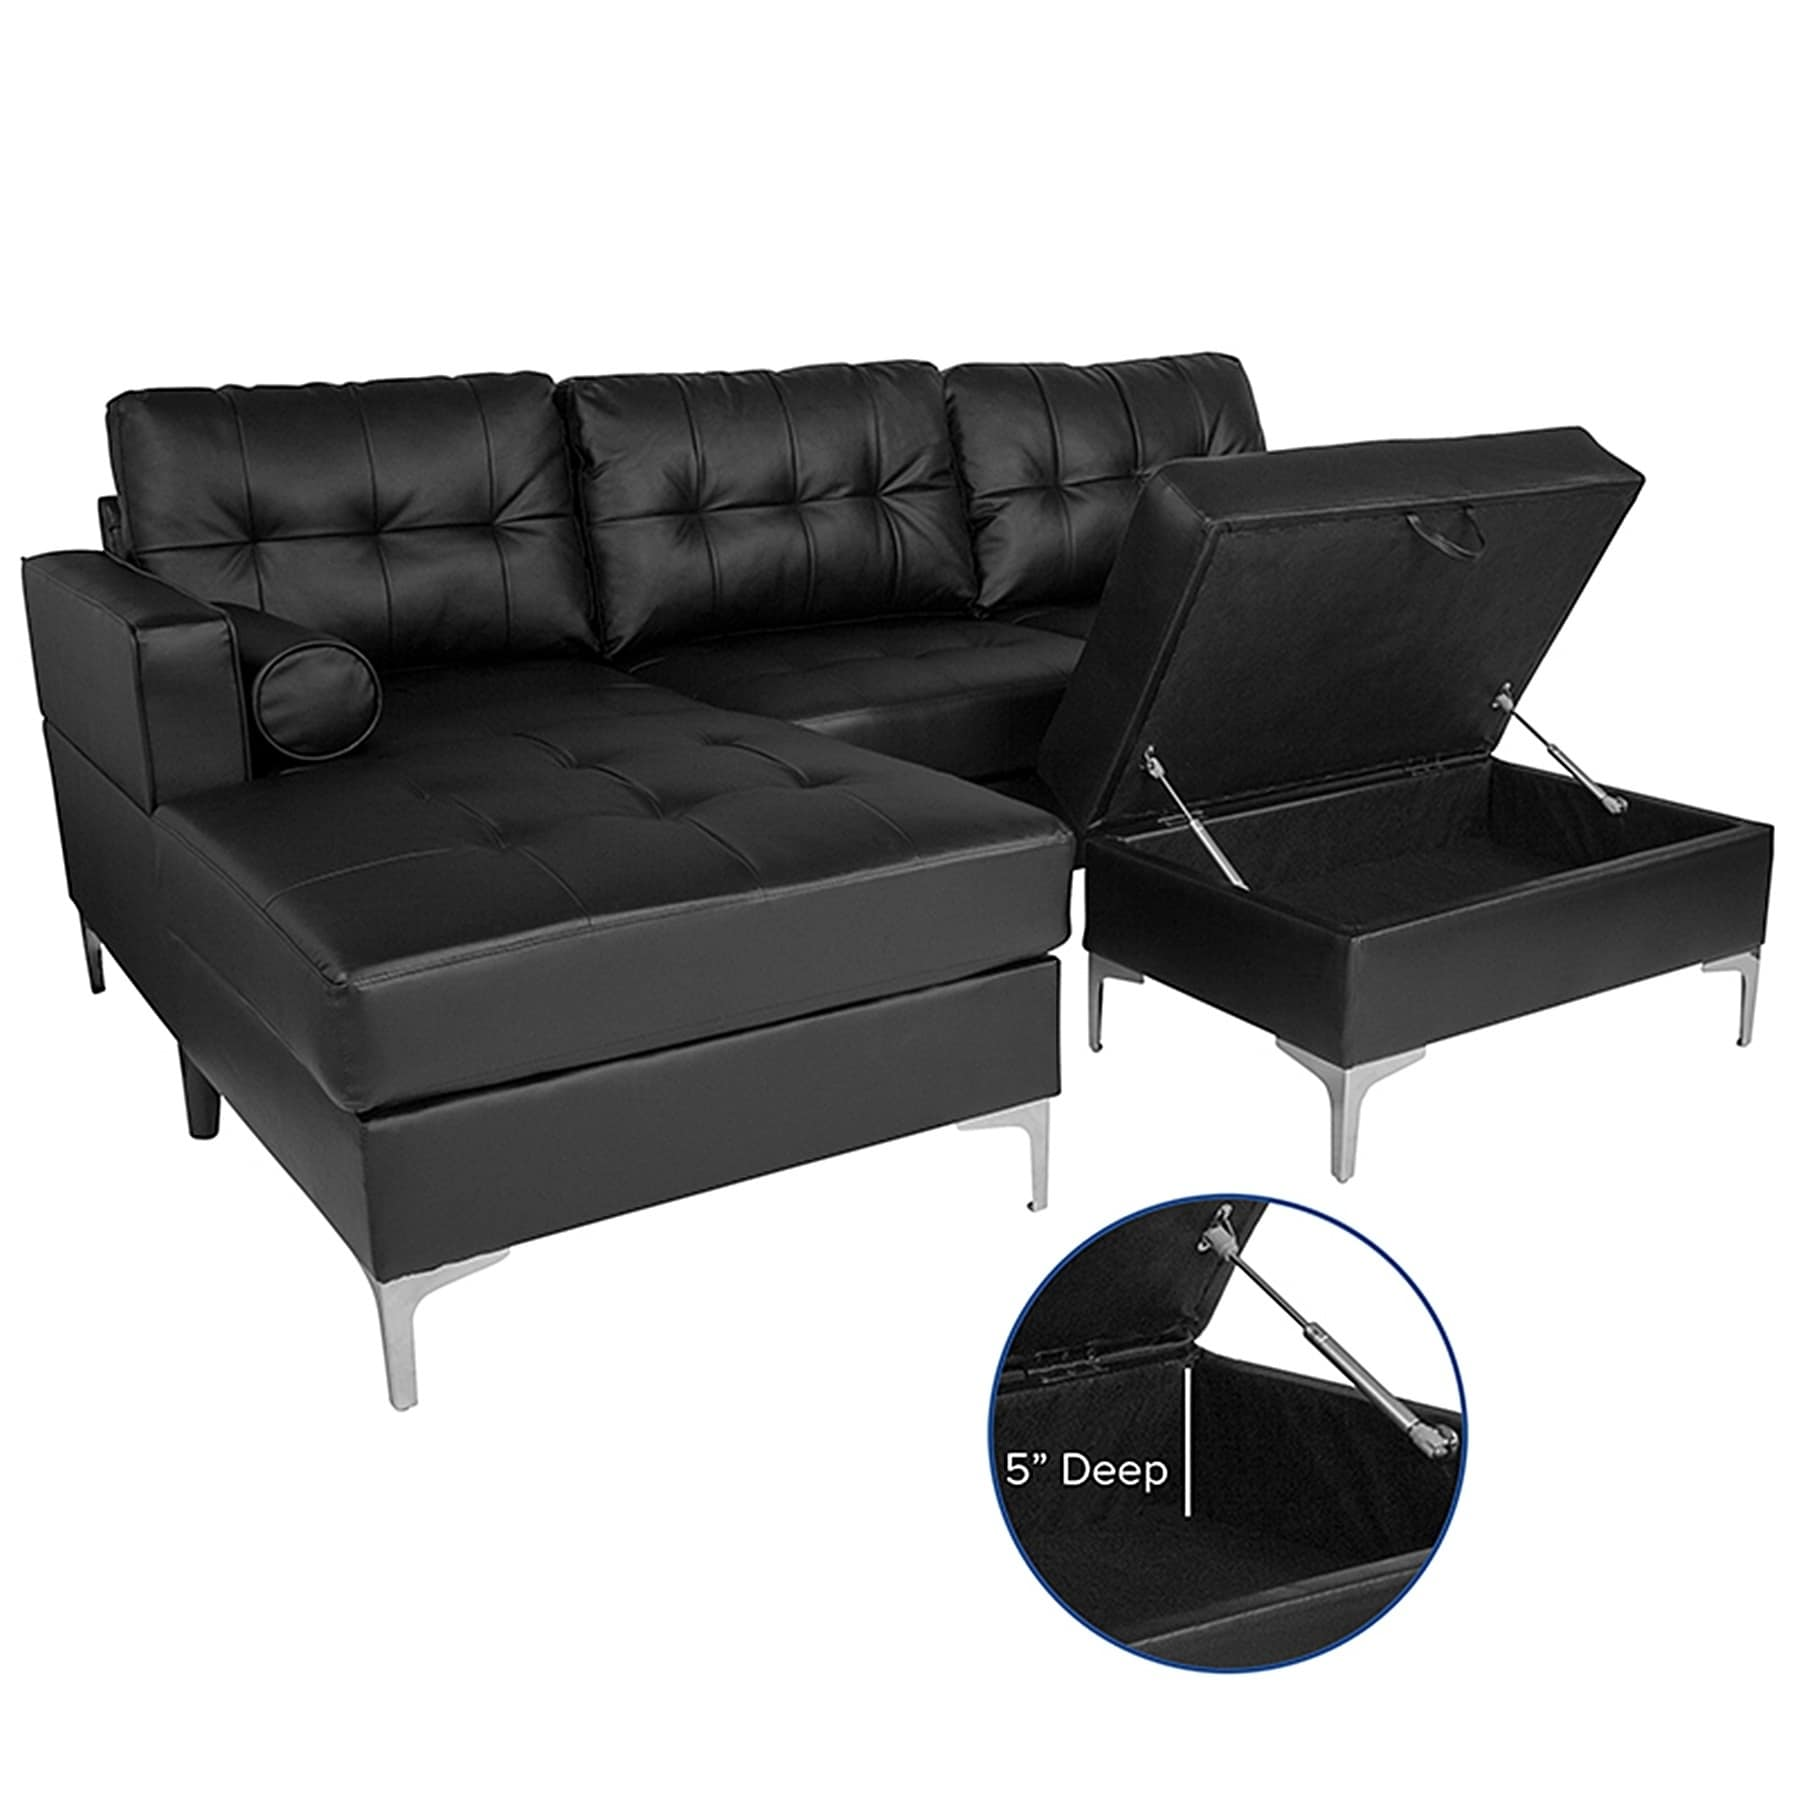 Bellmore 3-Piece Black Leather Sectional Sofa with Left Facing Chaise and  Storage Ottoman